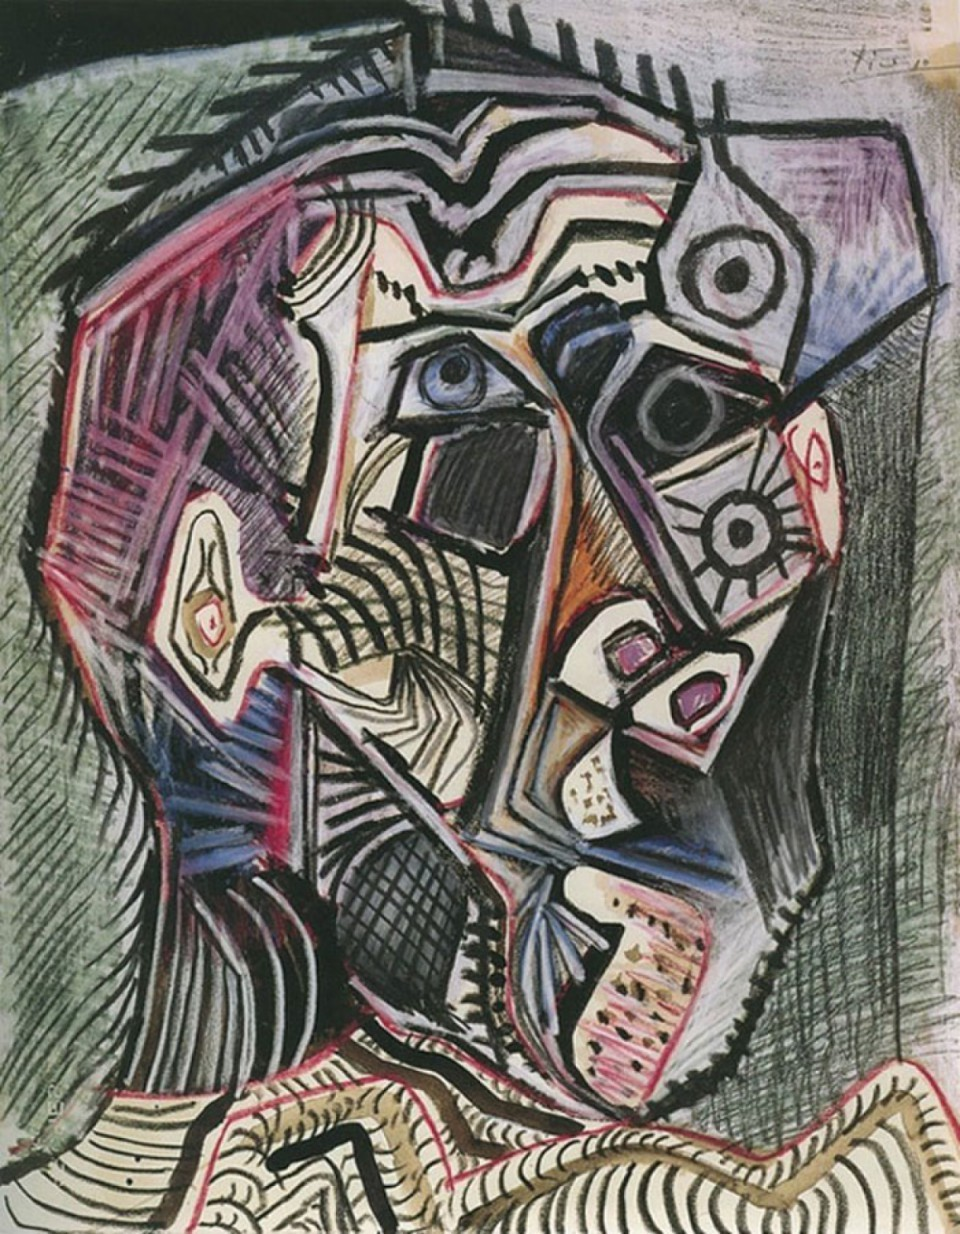 essay on pablo picasso biography Pablo picasso was born pablo blasco on oct 25, 1881, in malaga, spain, where his father, josé ruiz blasco, was a professor in the school of arts and crafts pablo's mother was maria picasso and the artist used her surname from about 1901 on.